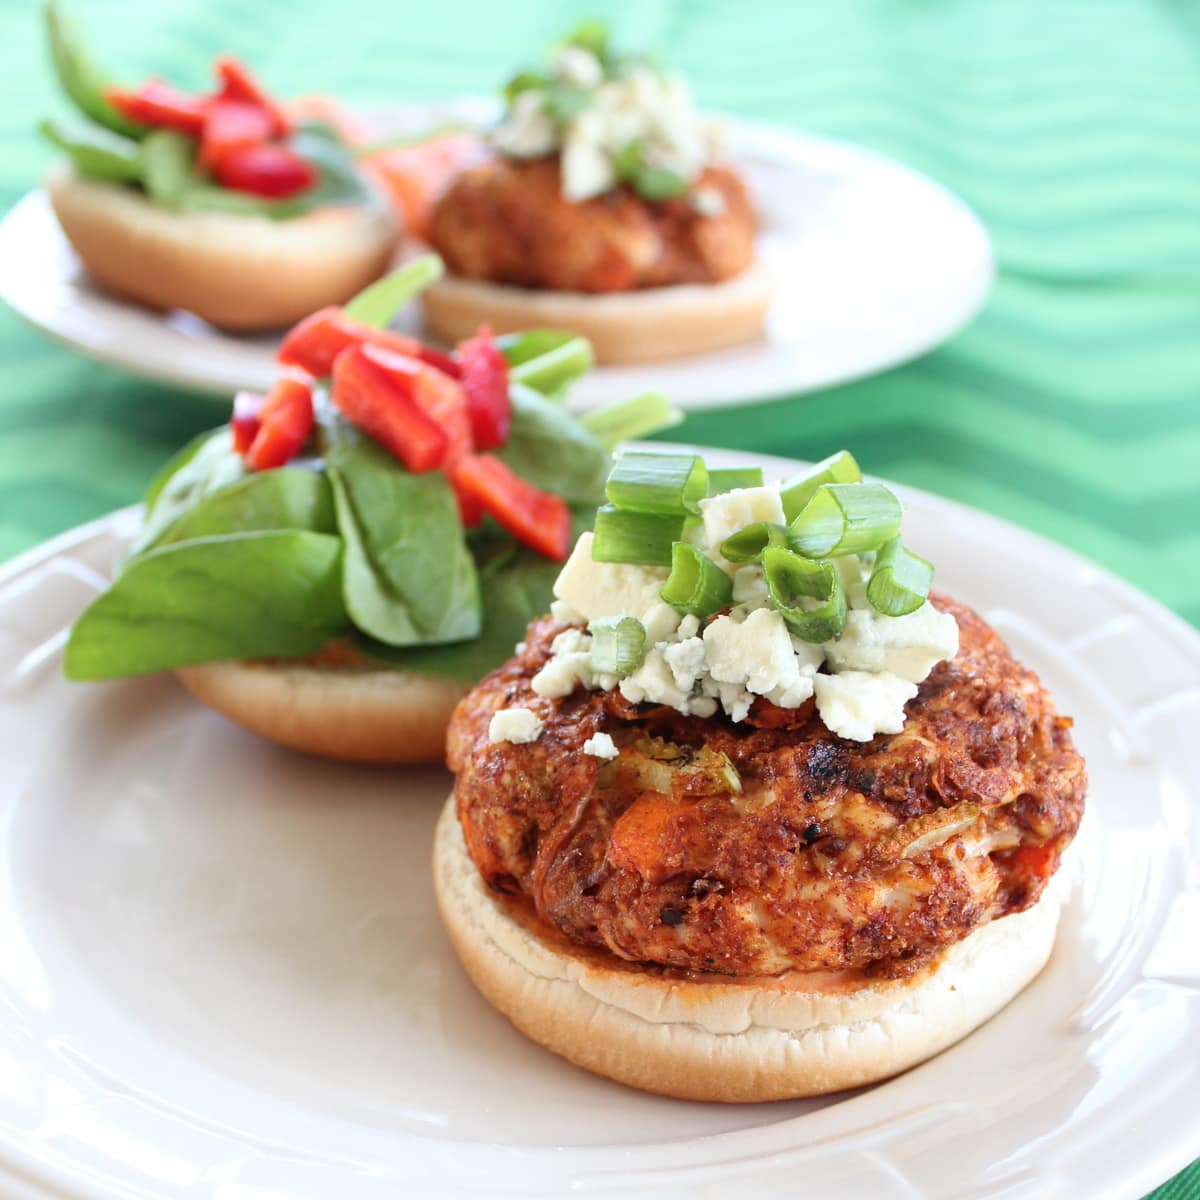 ... buffalo chicken burger topped with blue cheese, green onions and a